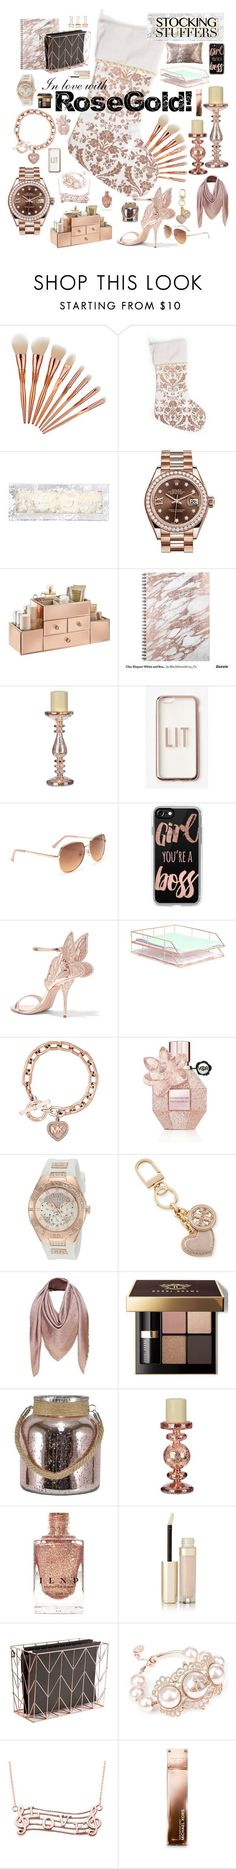 """In Love With Rose Gold!"" by ladydivaboss ❤️ liked on Polyvore featuring interior, interiors, interior design, home, home decor, interior decorating, Hanky Panky, Rolex, Missguided and Aé️️ropostale"